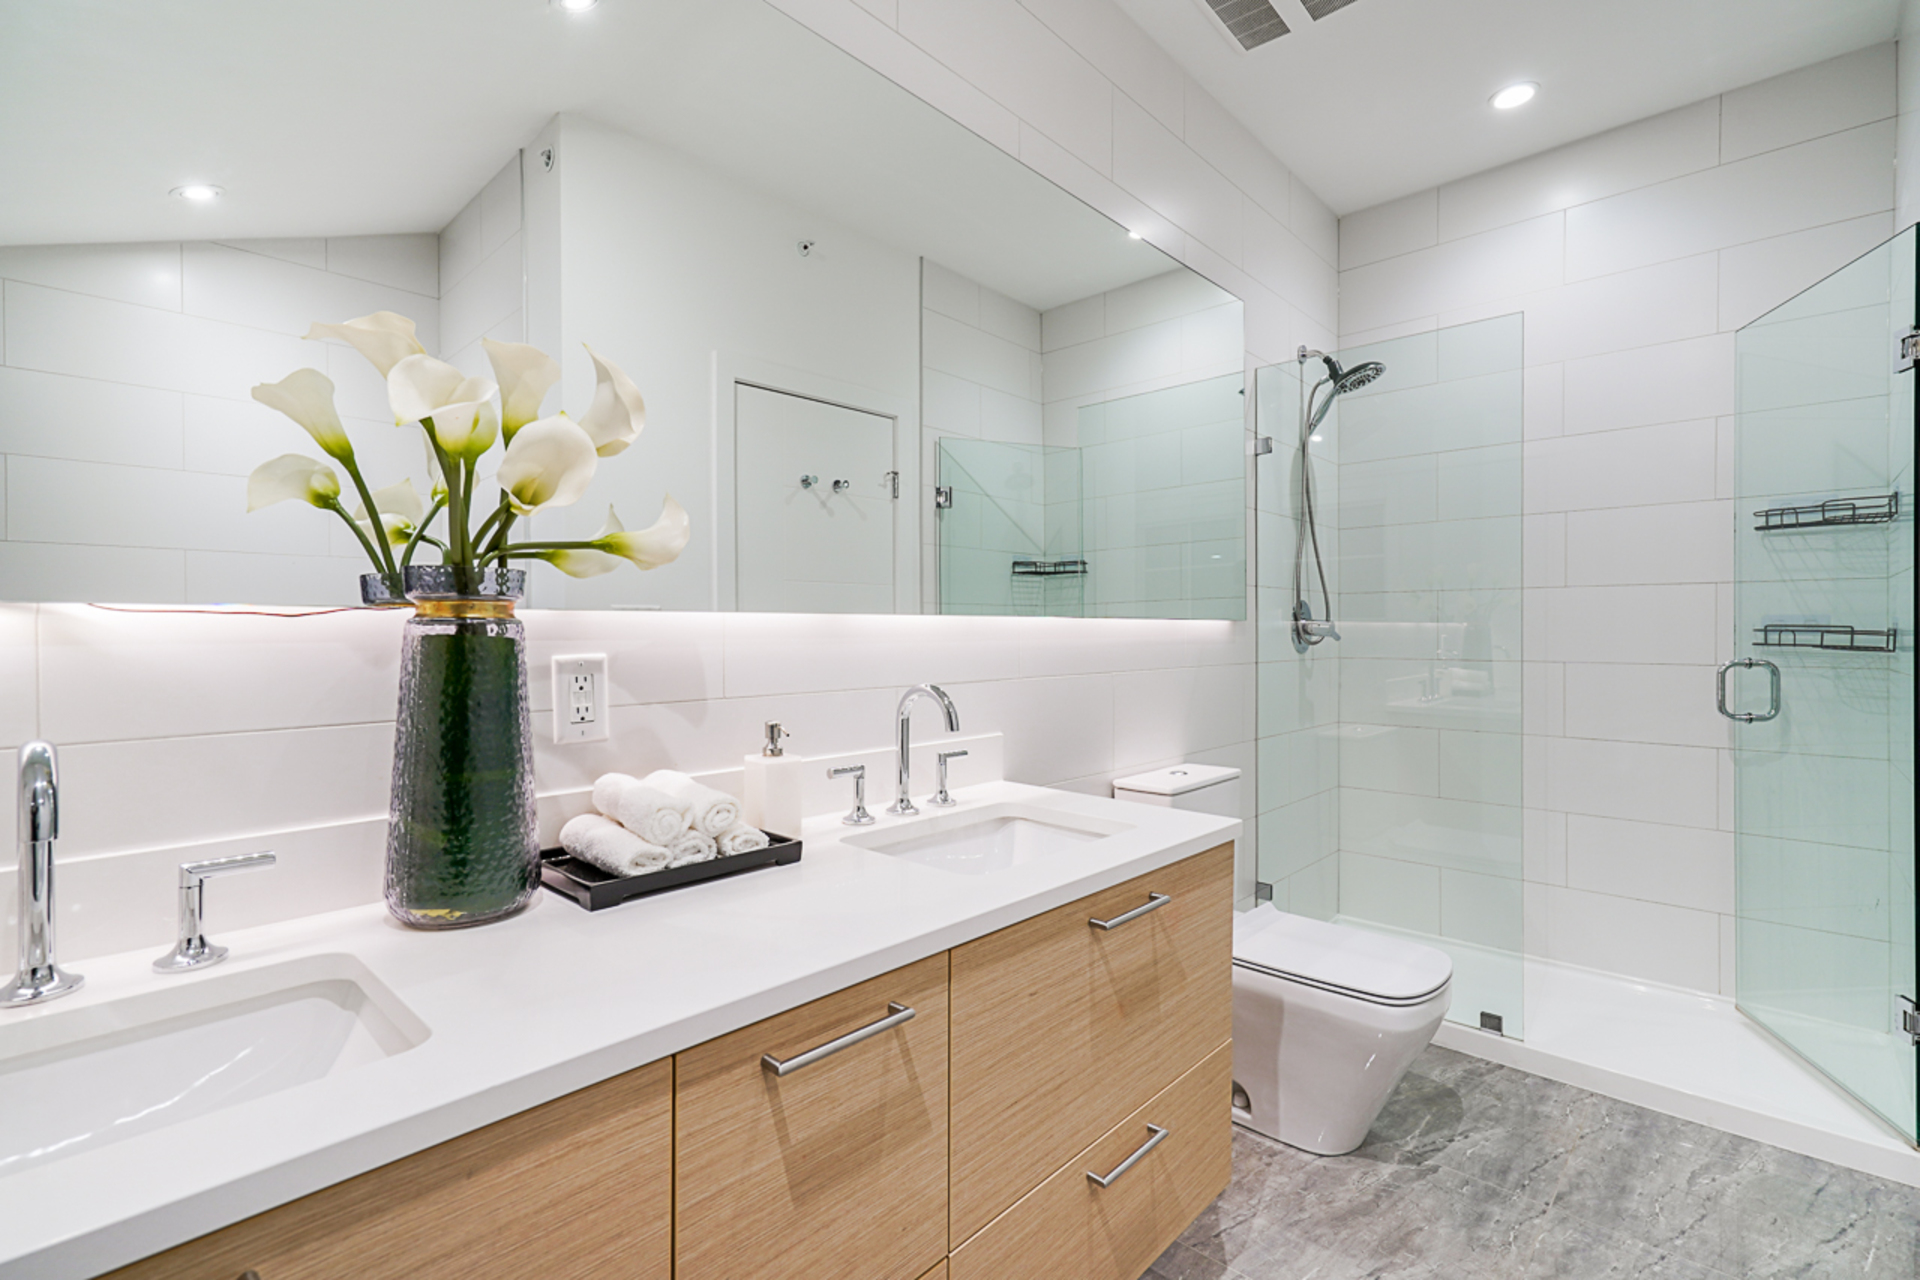 unit-11-1133-rigewood-drive-north-vancouver-43 at 11 - 1133 Ridgewood Drive, Edgemont, North Vancouver